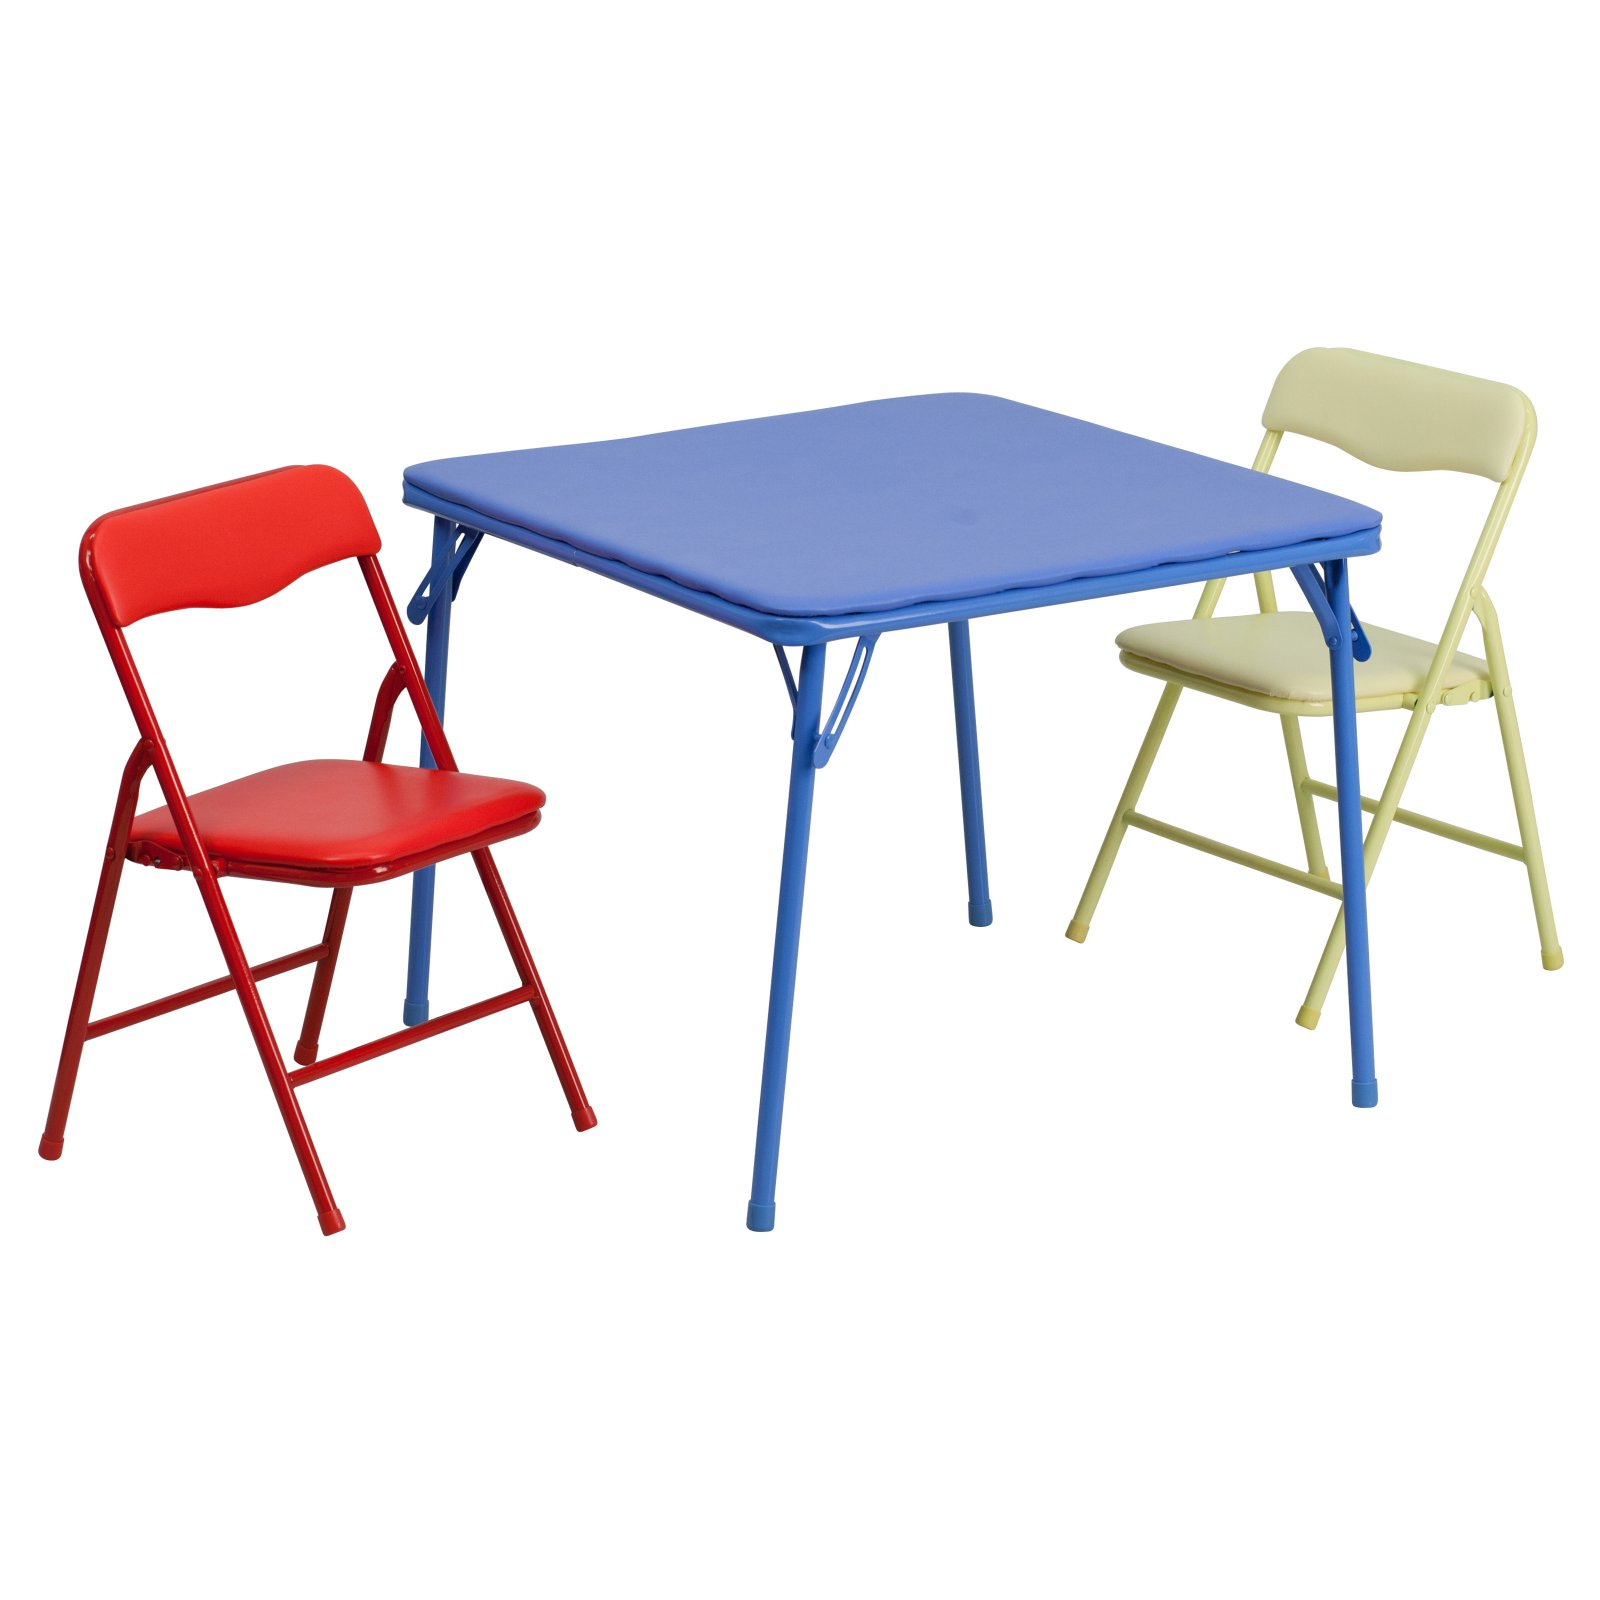 folding table and chair set wheelchair zipper 2 flash furniture kids colorful 3 piece walmart com